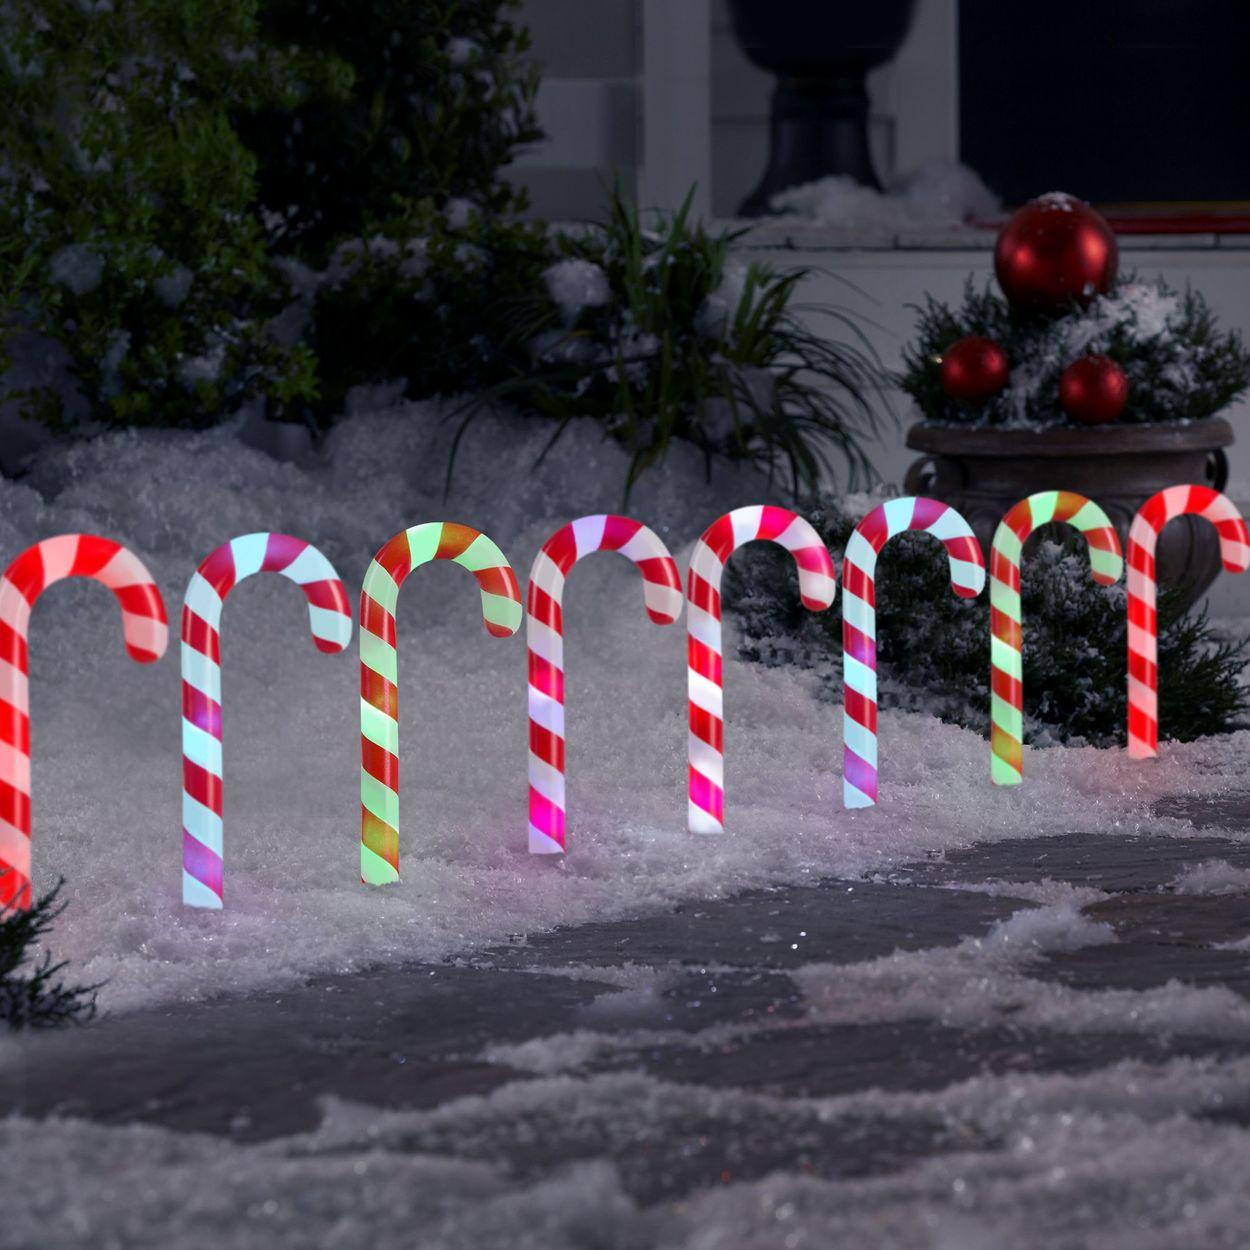 Gemmy Orchestra of Lights 8 Marker Color Changing Candy Cane Christmas Pathway Markers